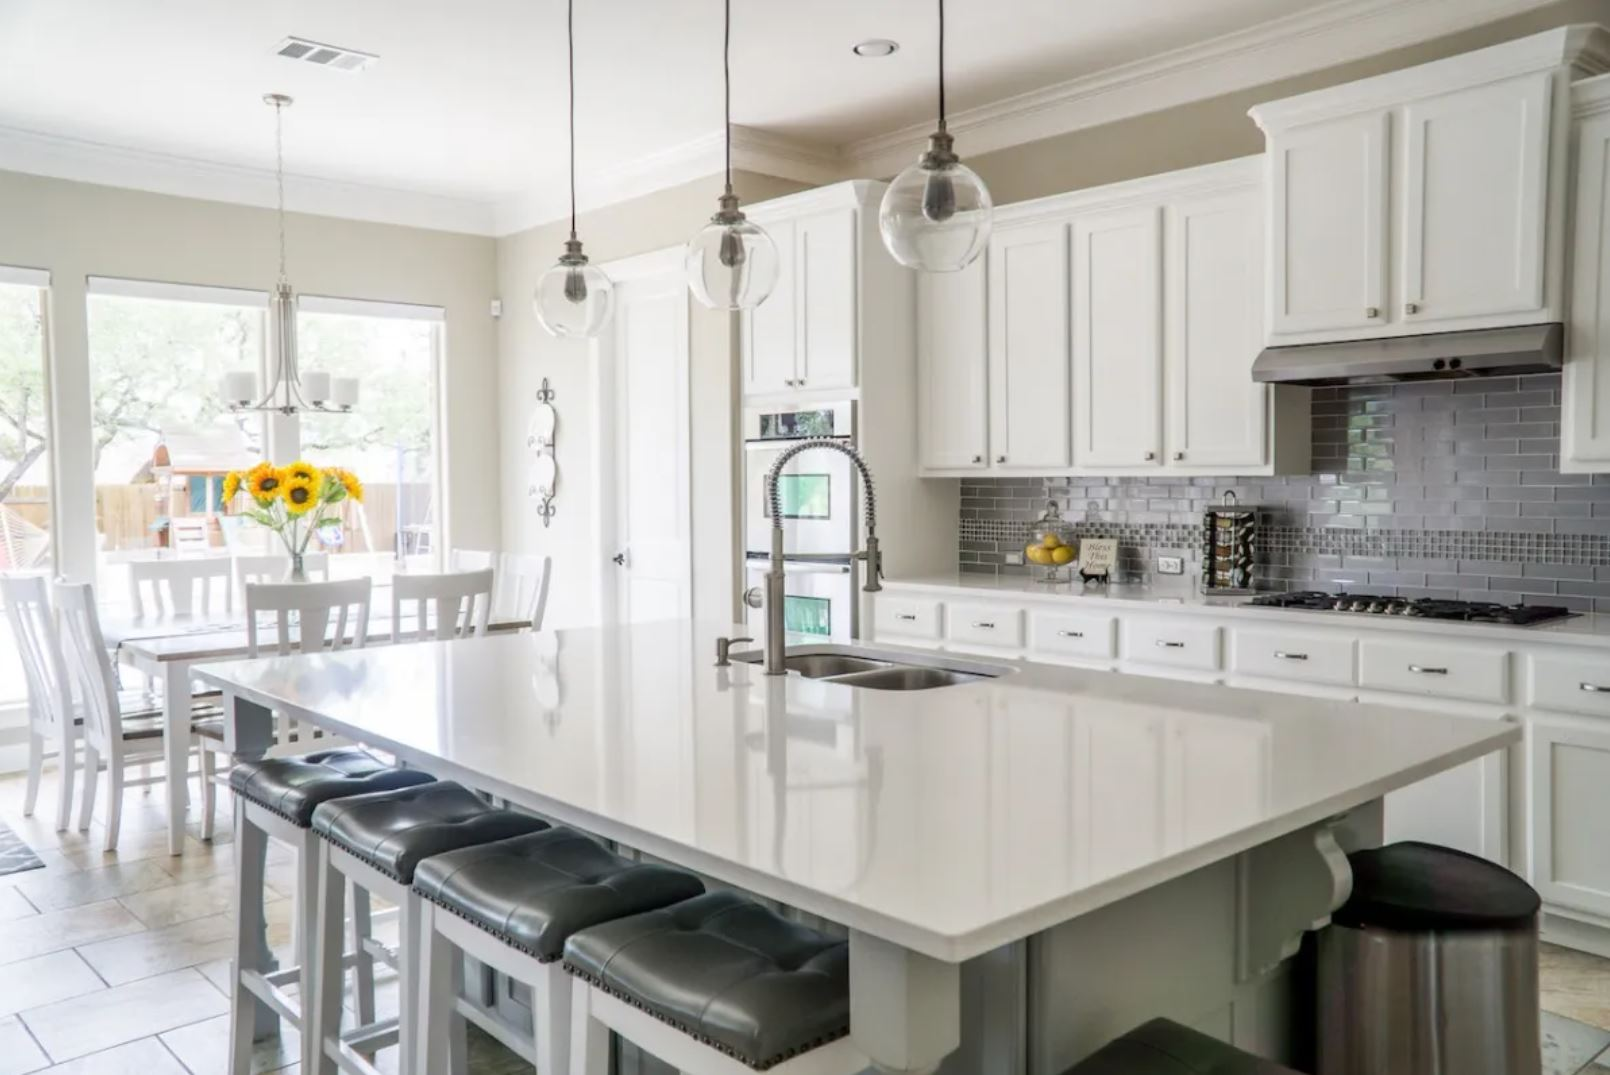 Realtor Magazine 2021 05 07 Home Staging that looks TV ready Step Four what is important since going through the China COVID-19 Coronavirus plandemic Hoey Team exp Realty